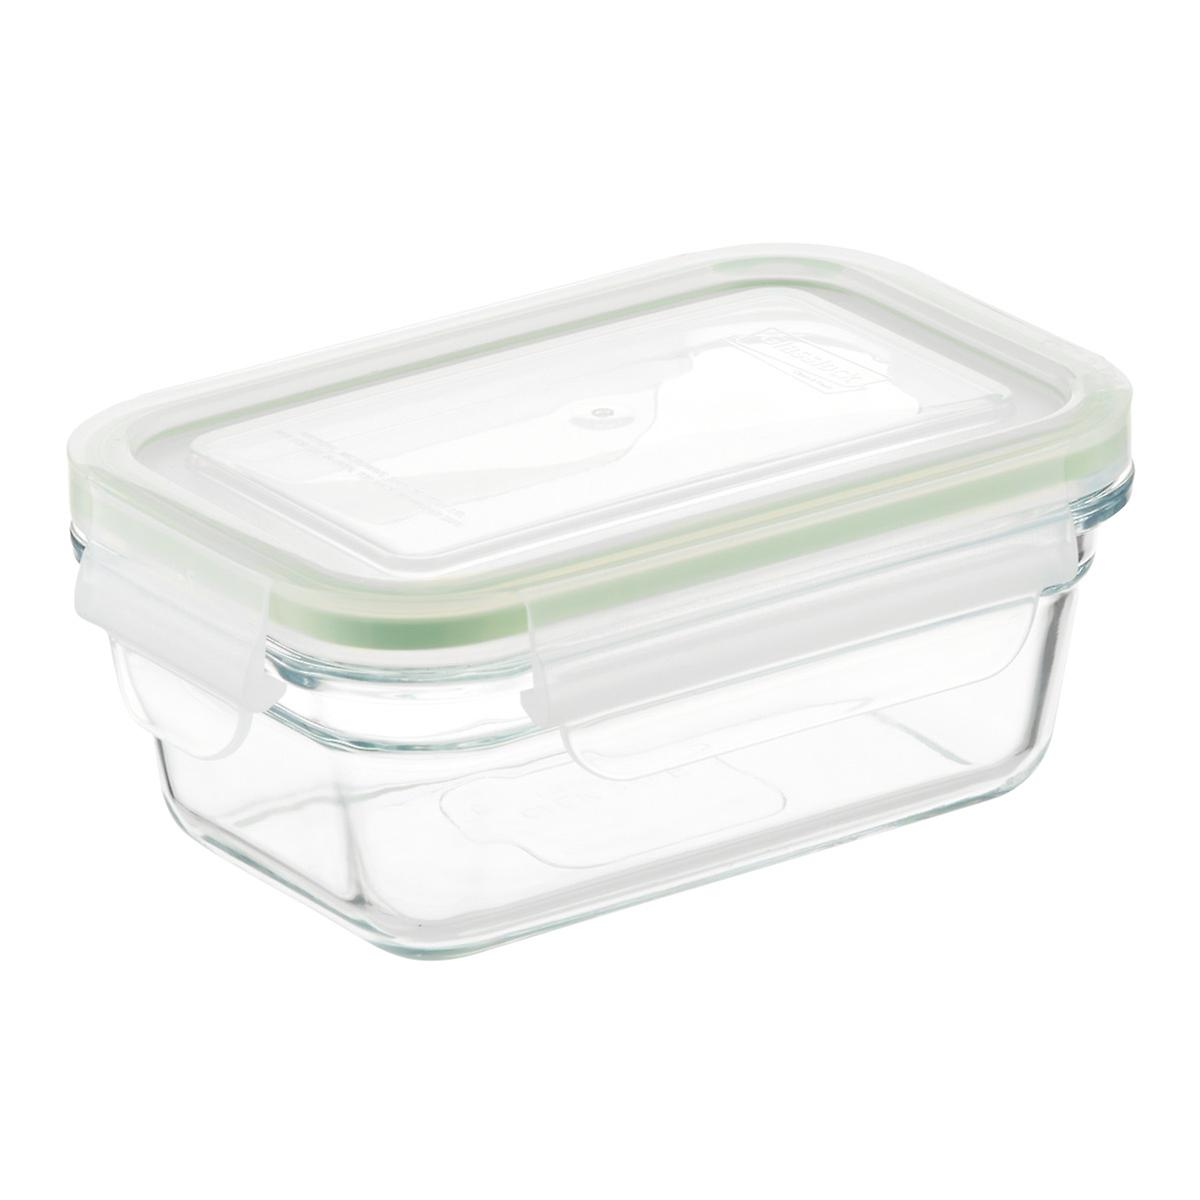 glasslock rectangular food containers with lids the container store. Black Bedroom Furniture Sets. Home Design Ideas